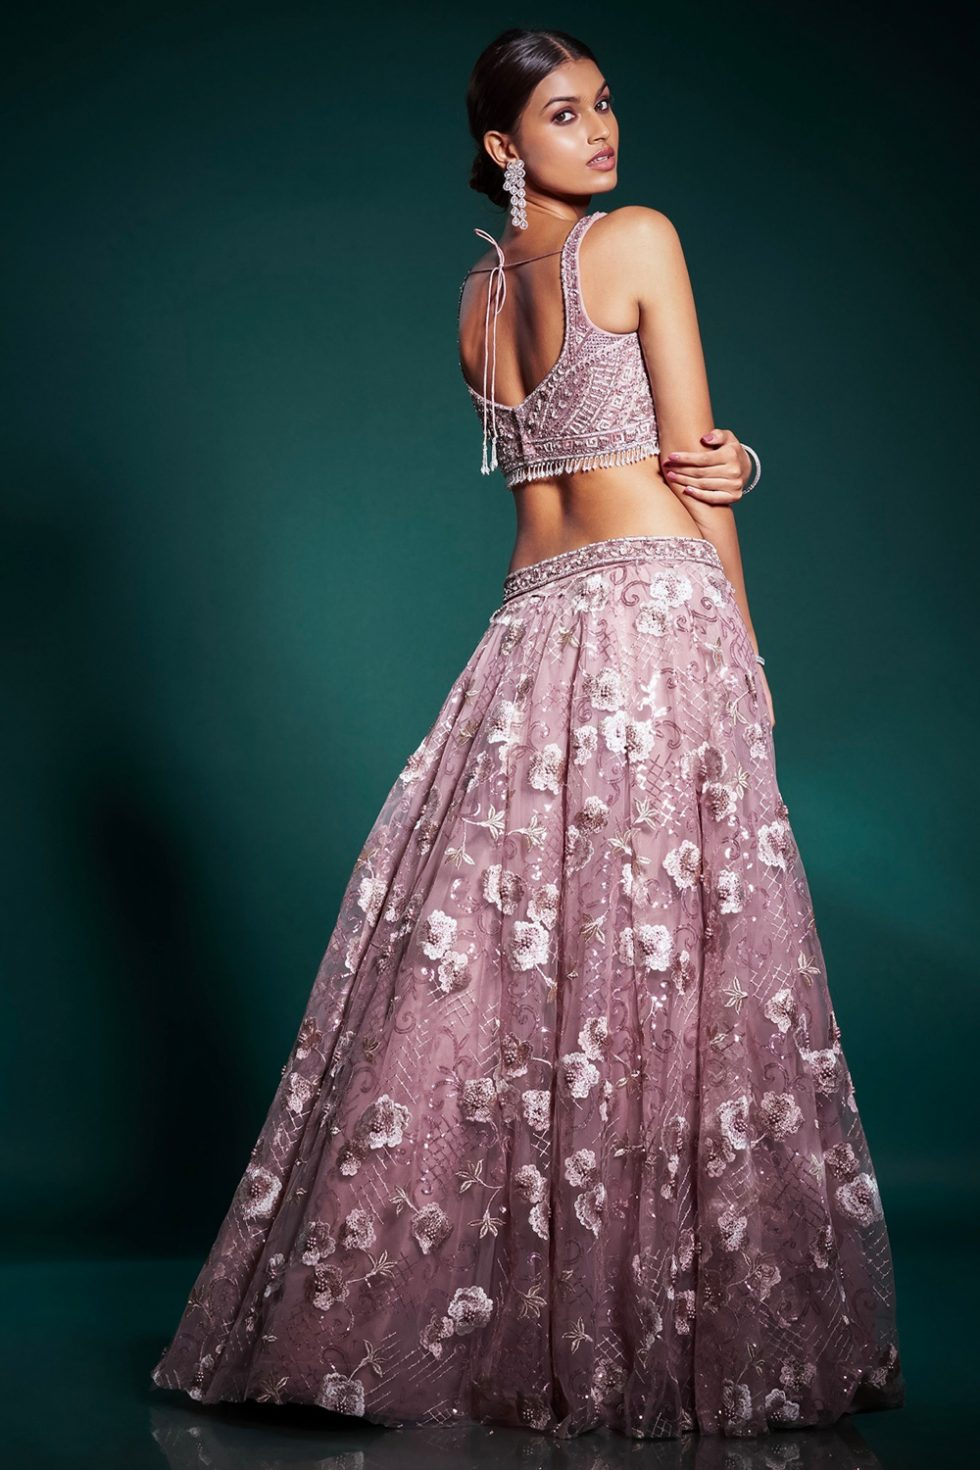 Dusty pink lehenga set with a hand embroidered blouse and a lace sequin work skirt paired with a matching dupatta and tassels.